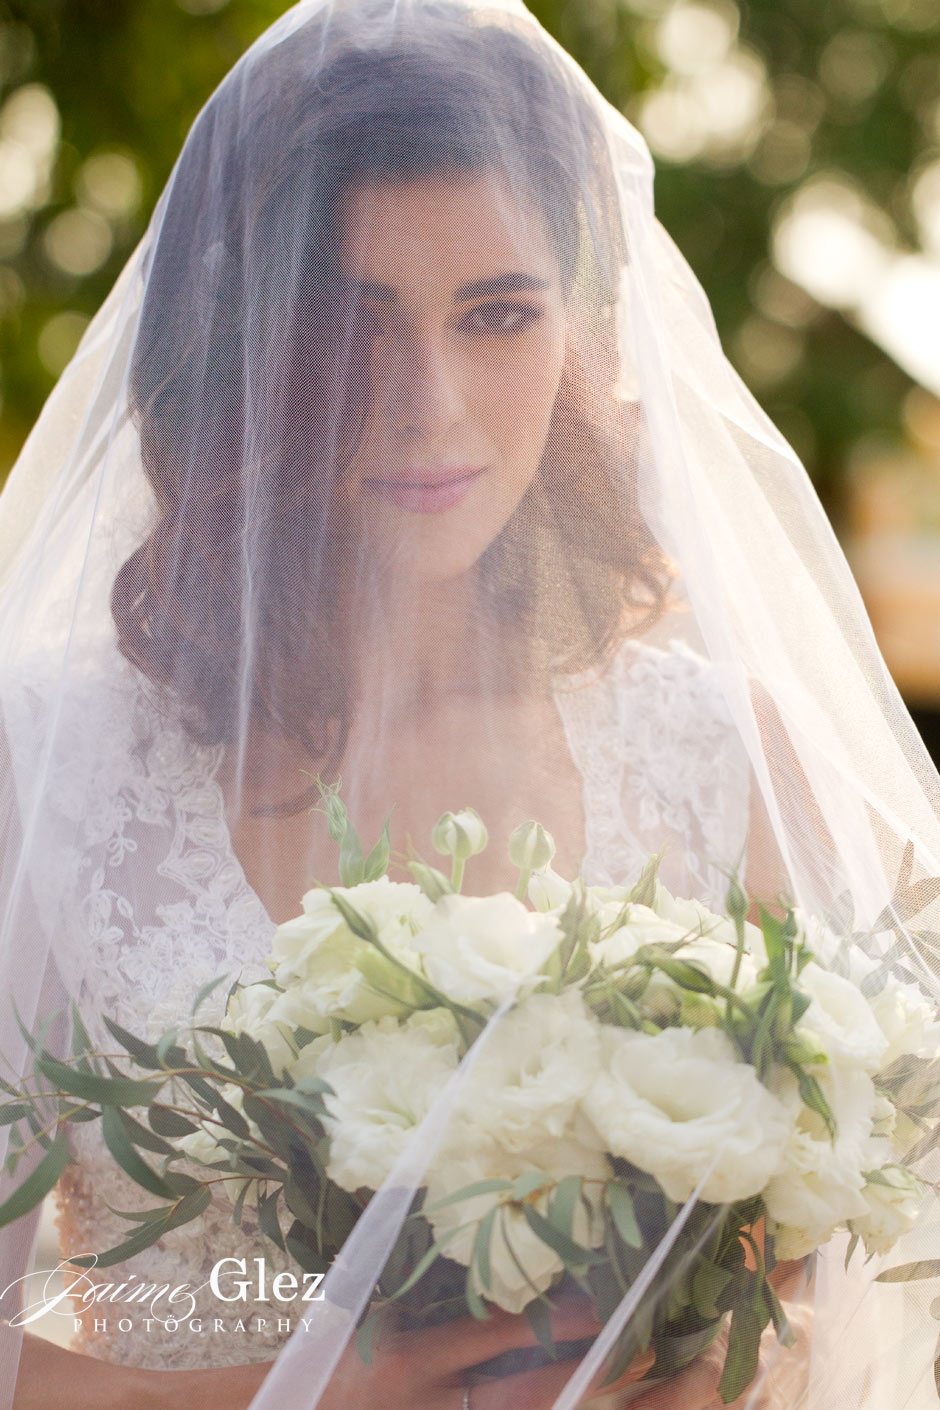 Light, bride's veil and bridal beauty gave us a such a perfect photo!